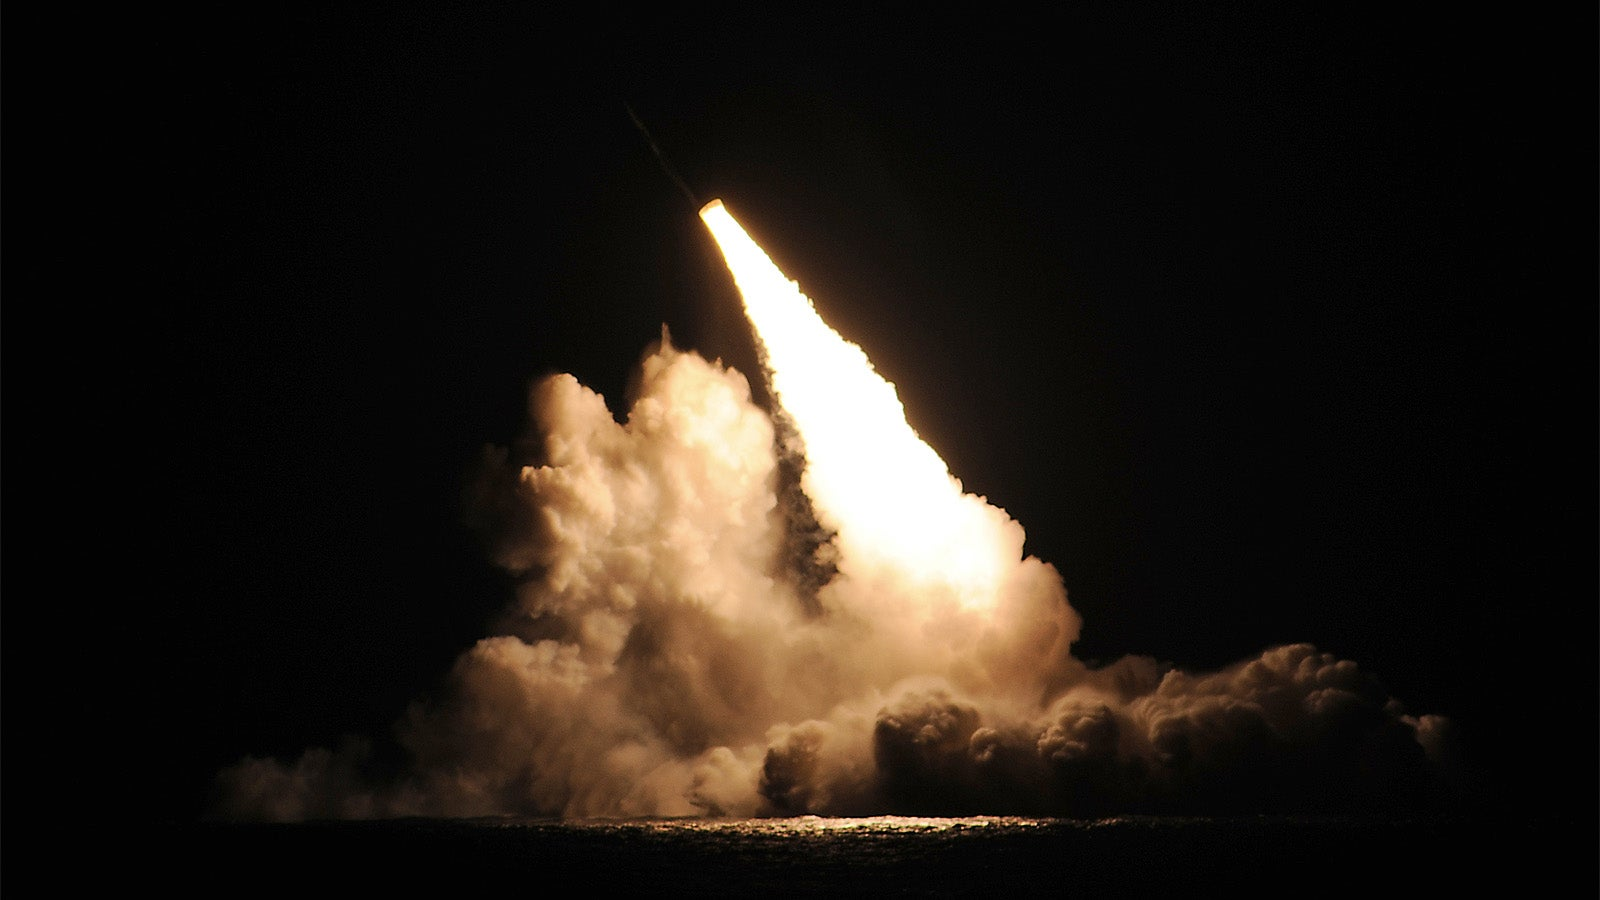 Here Is the Missile That Caused A UFO Panic Along The Coast Of California